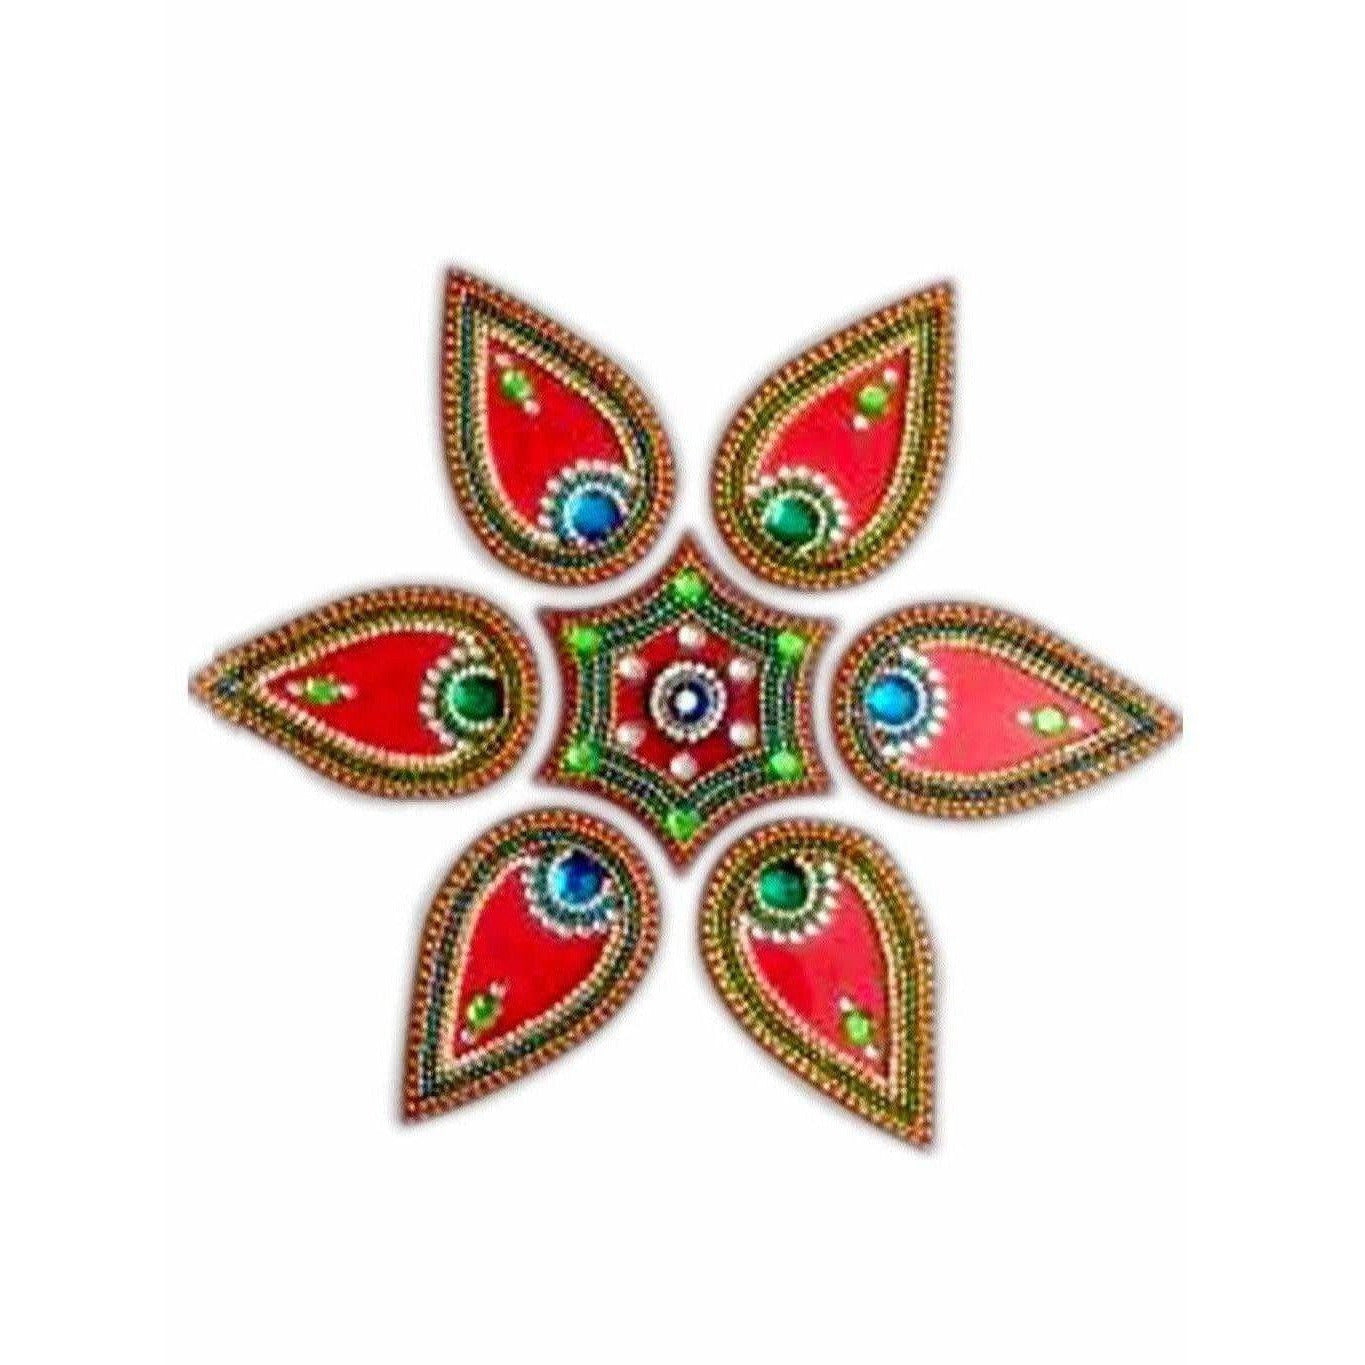 Flower Shaped 6 piece Rangoli Floor Design for pooja decoration and Wall Decoration